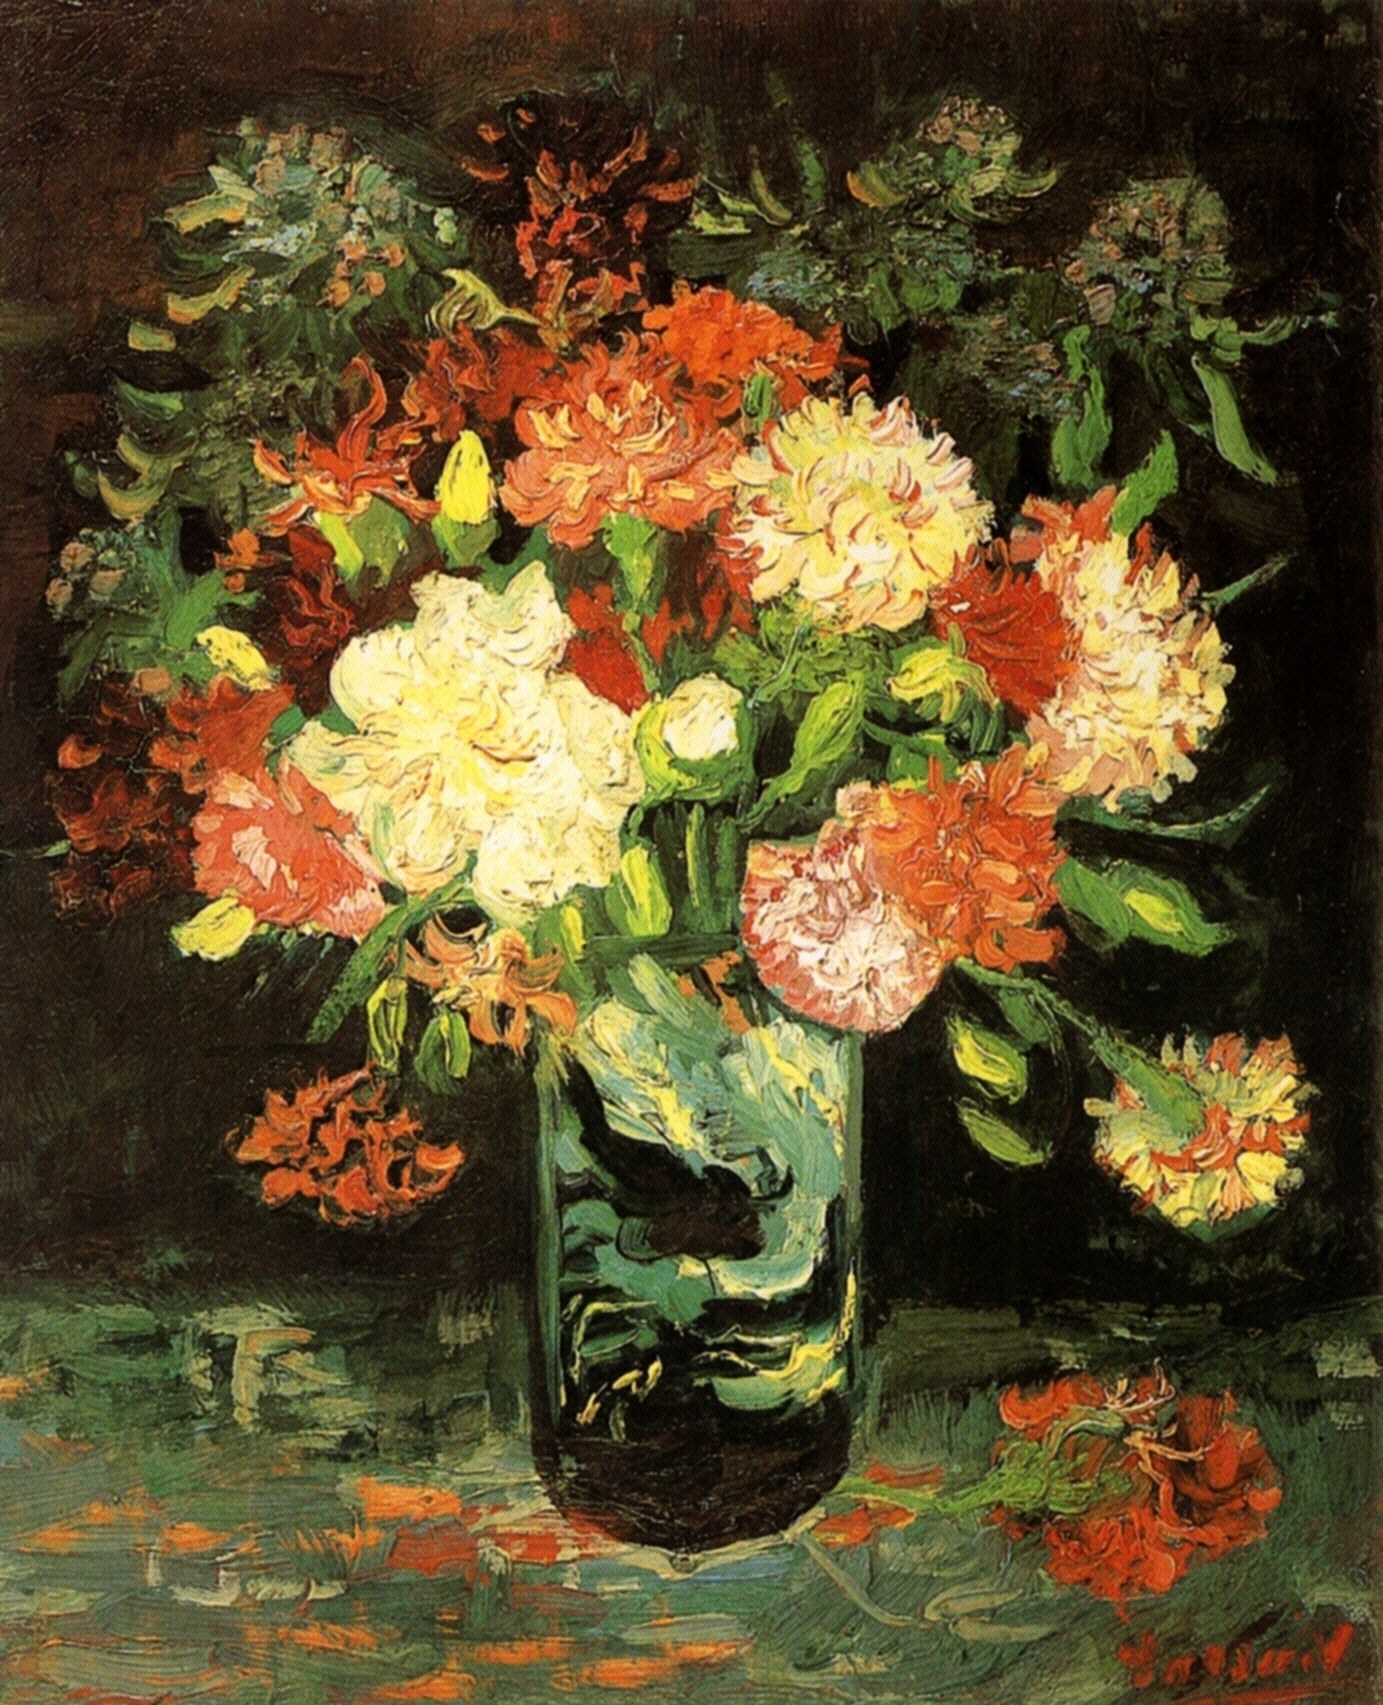 Vase with Carnations 1886 Vincent van Gogh WikiArt